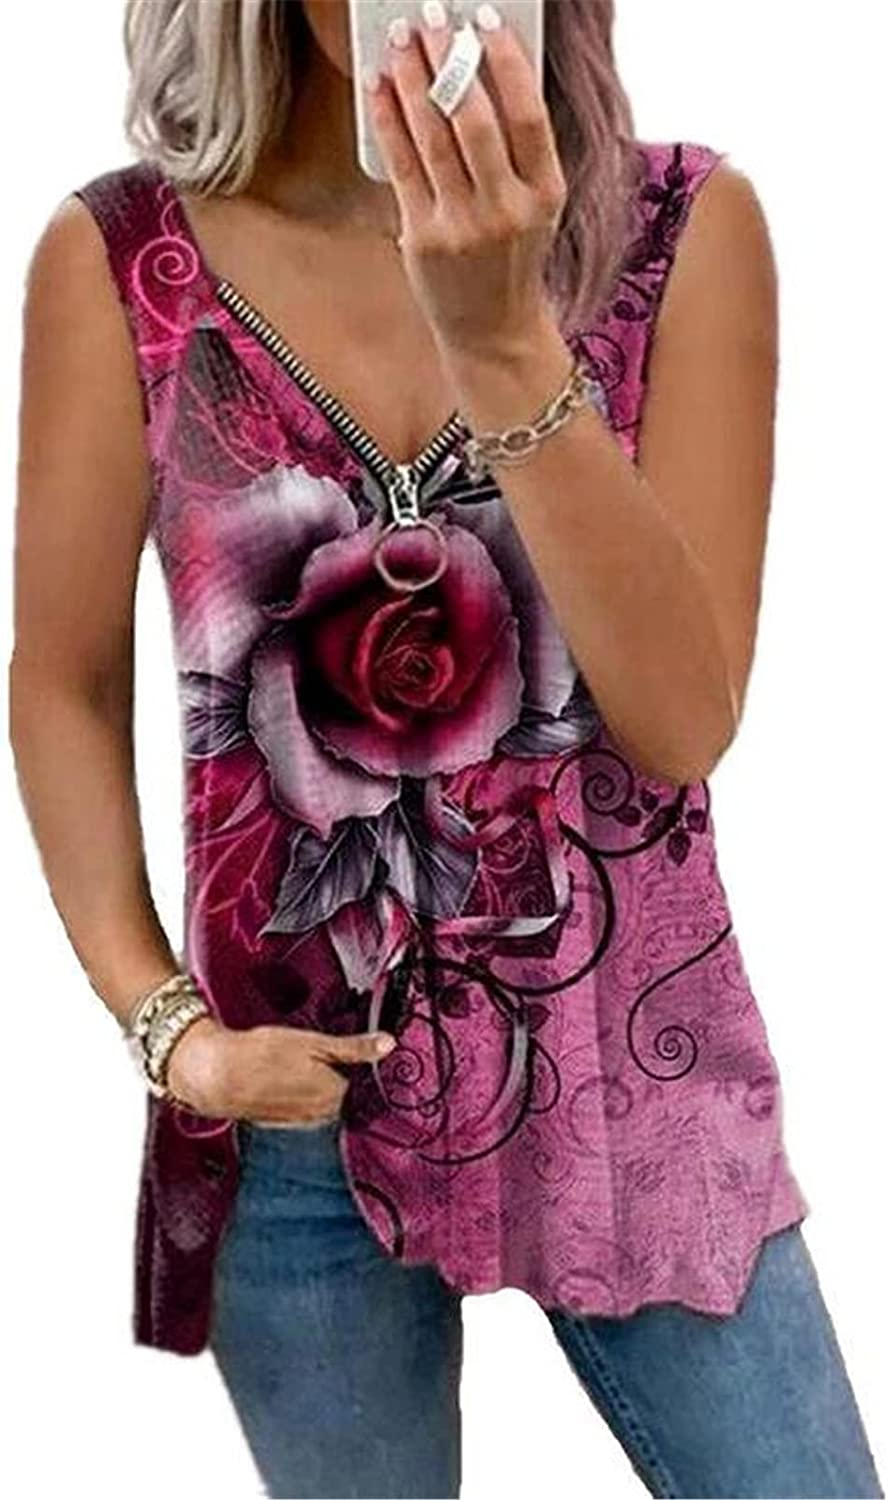 Veloday Tank Top for Women, Summer Womens Sexy Tank Top Loose Casual Sleeveless Rose Print Tunic Top Chain Vest Tee Shirts